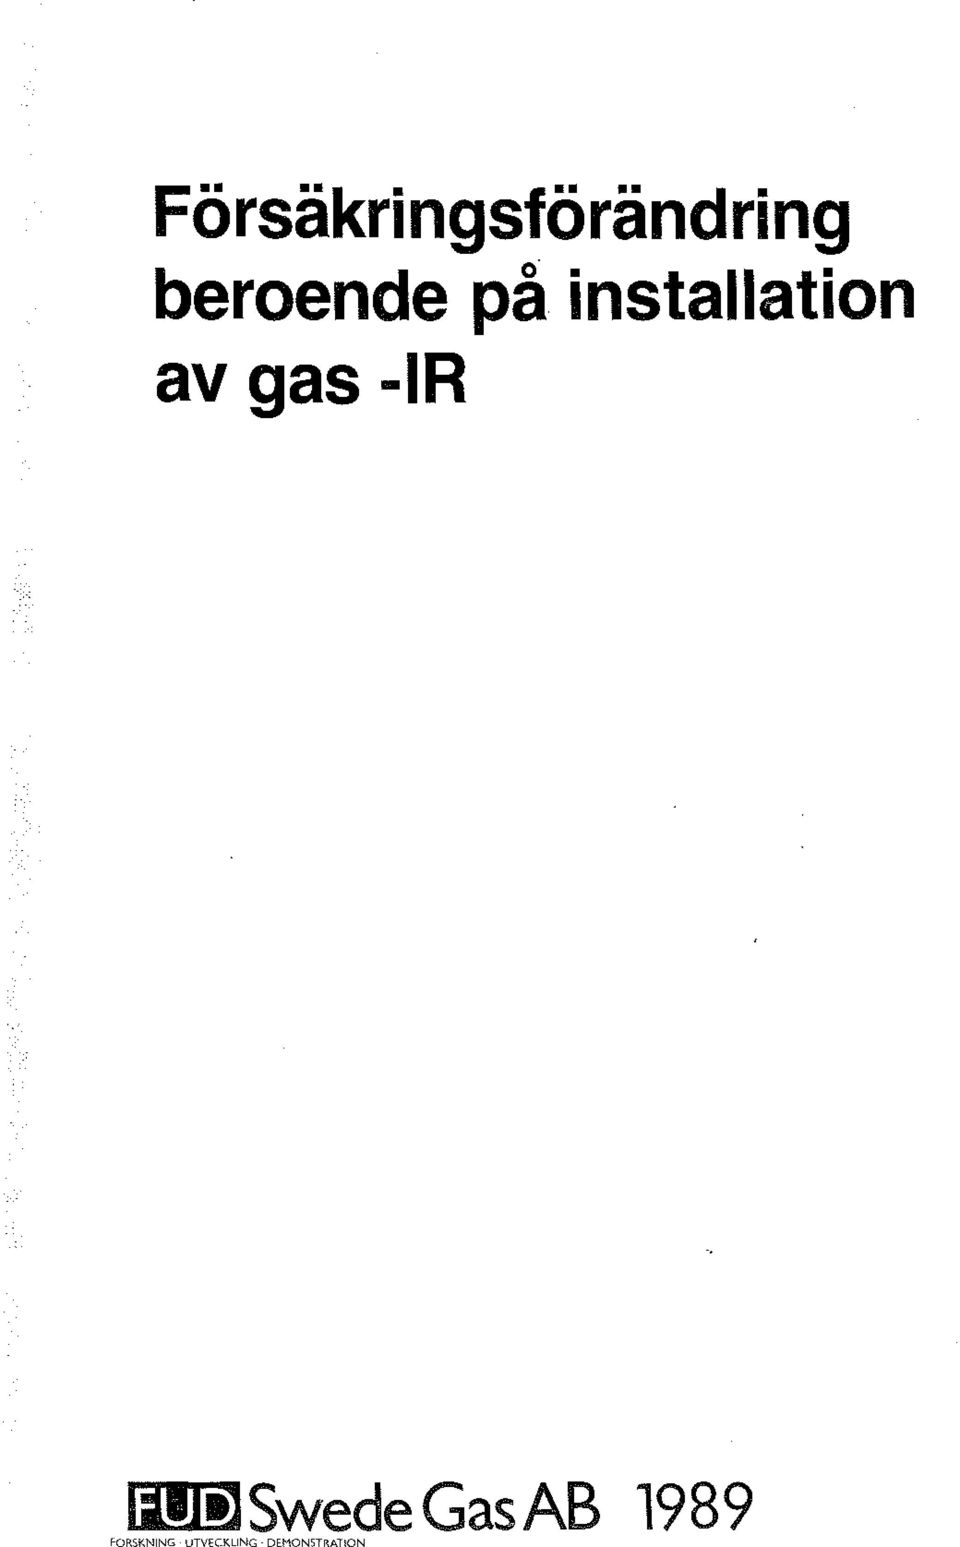 gas -IR lill )Swede Gas AB